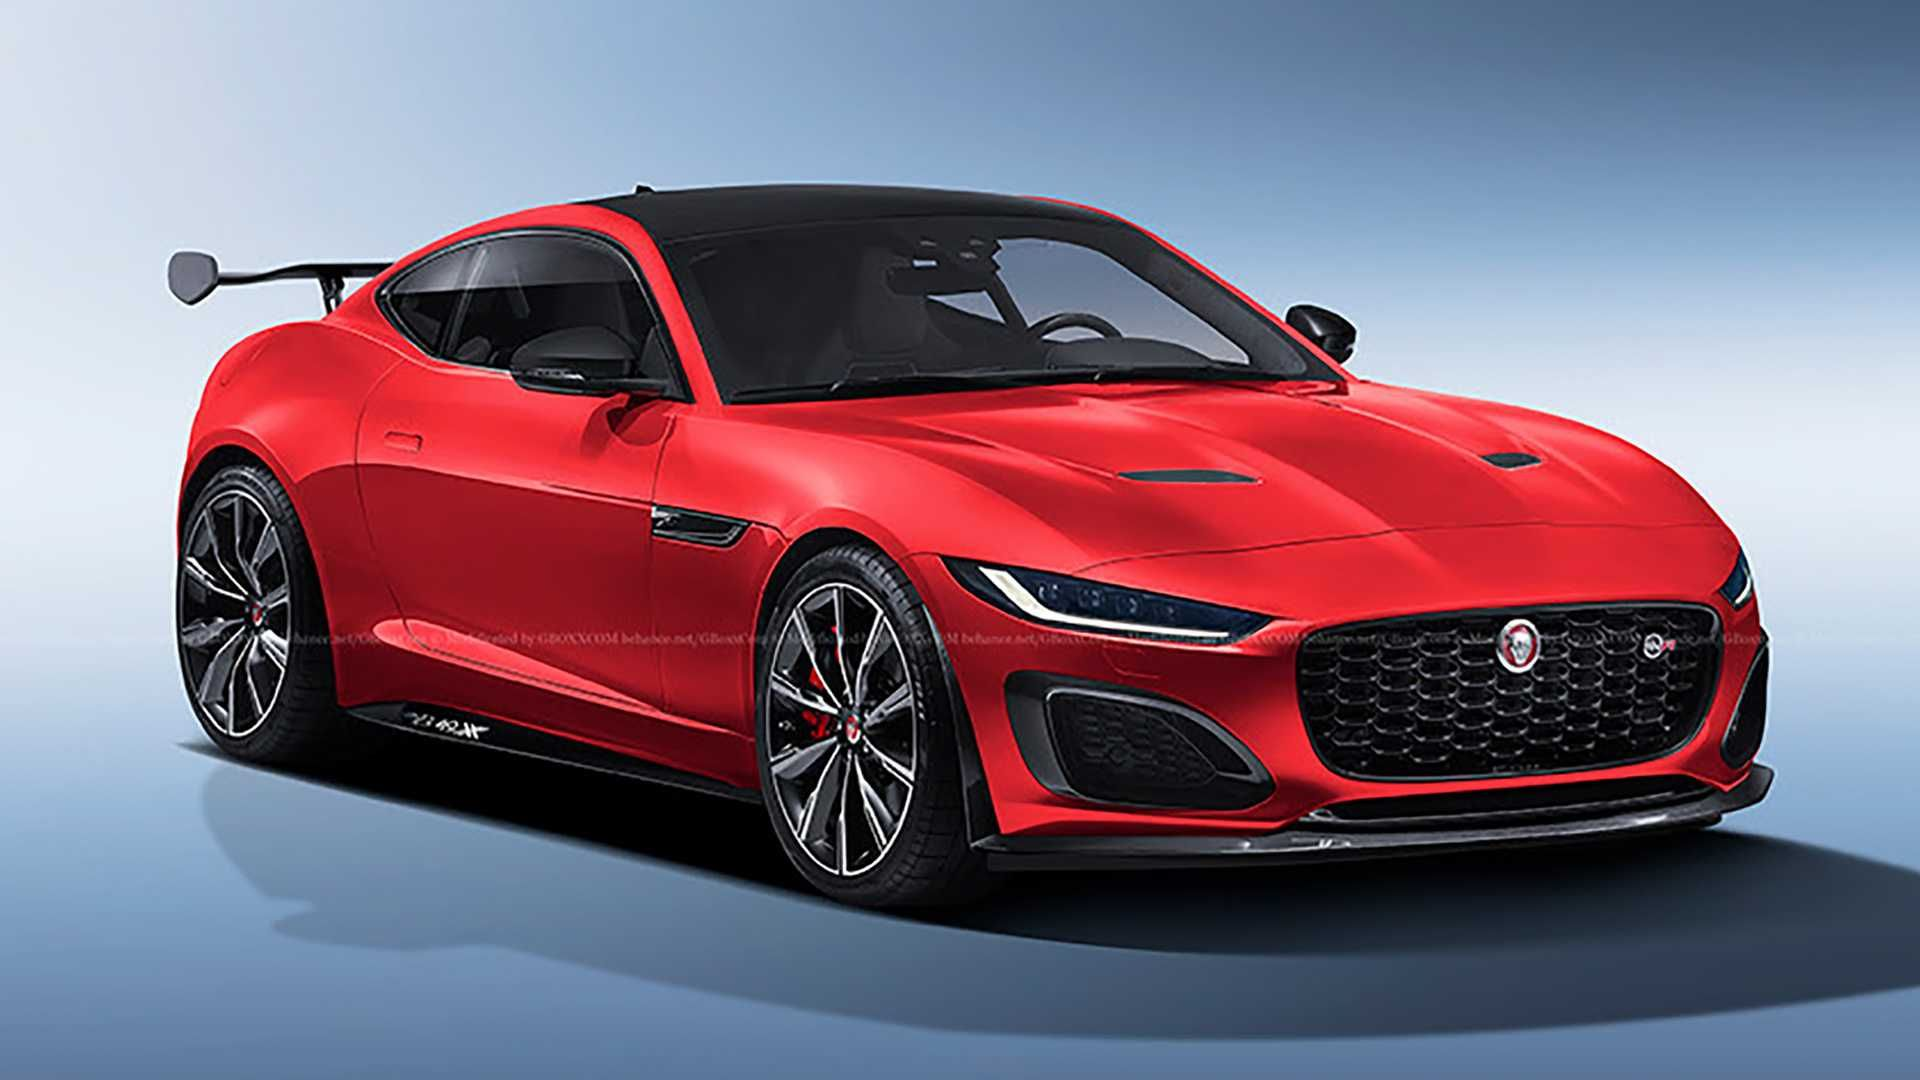 Refreshed Jaguar F Type Svr Rendered Sadly Not Happening Jaguar F Type Jaguar Jaguar Xe